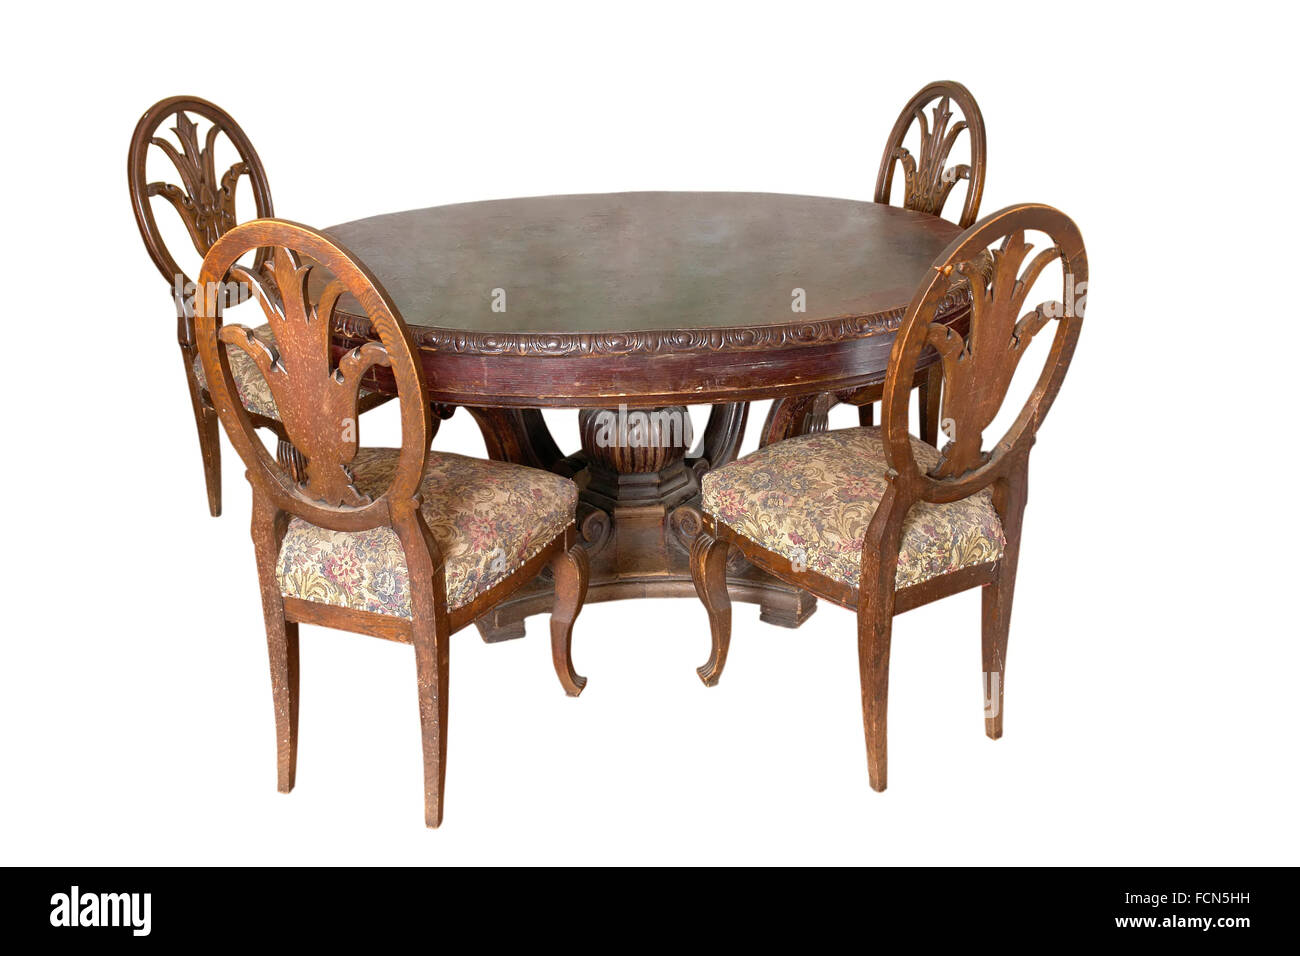 Old Fashioned Style Table Chairs Stockfotos & Old Fashioned Style ...